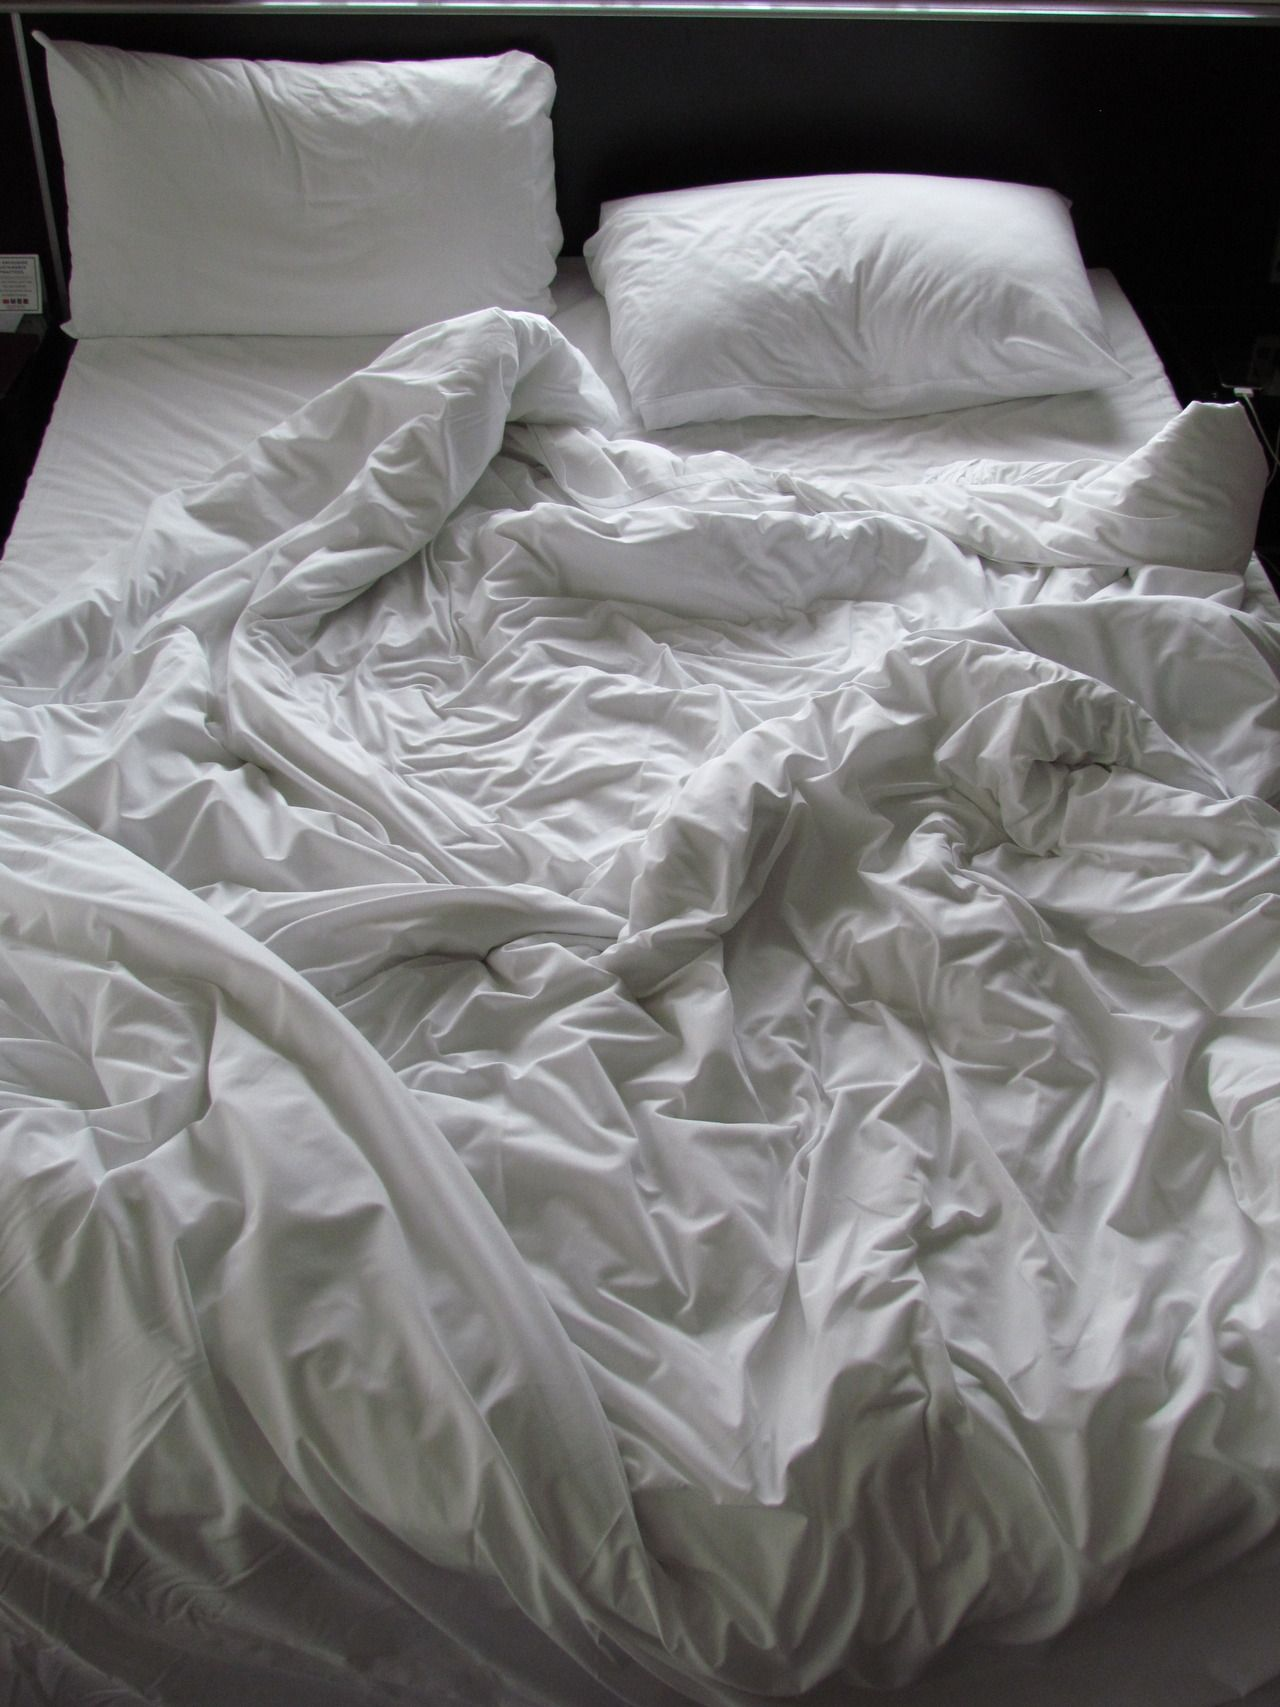 Black bed sheets tumblr - Let S Cuddle On A Rainy Day Watch Old Movies And Make Out Quotes Quote Words Word Saying Sayings Quotes Things Bed Bedroom Sheets Love Loving Lovers